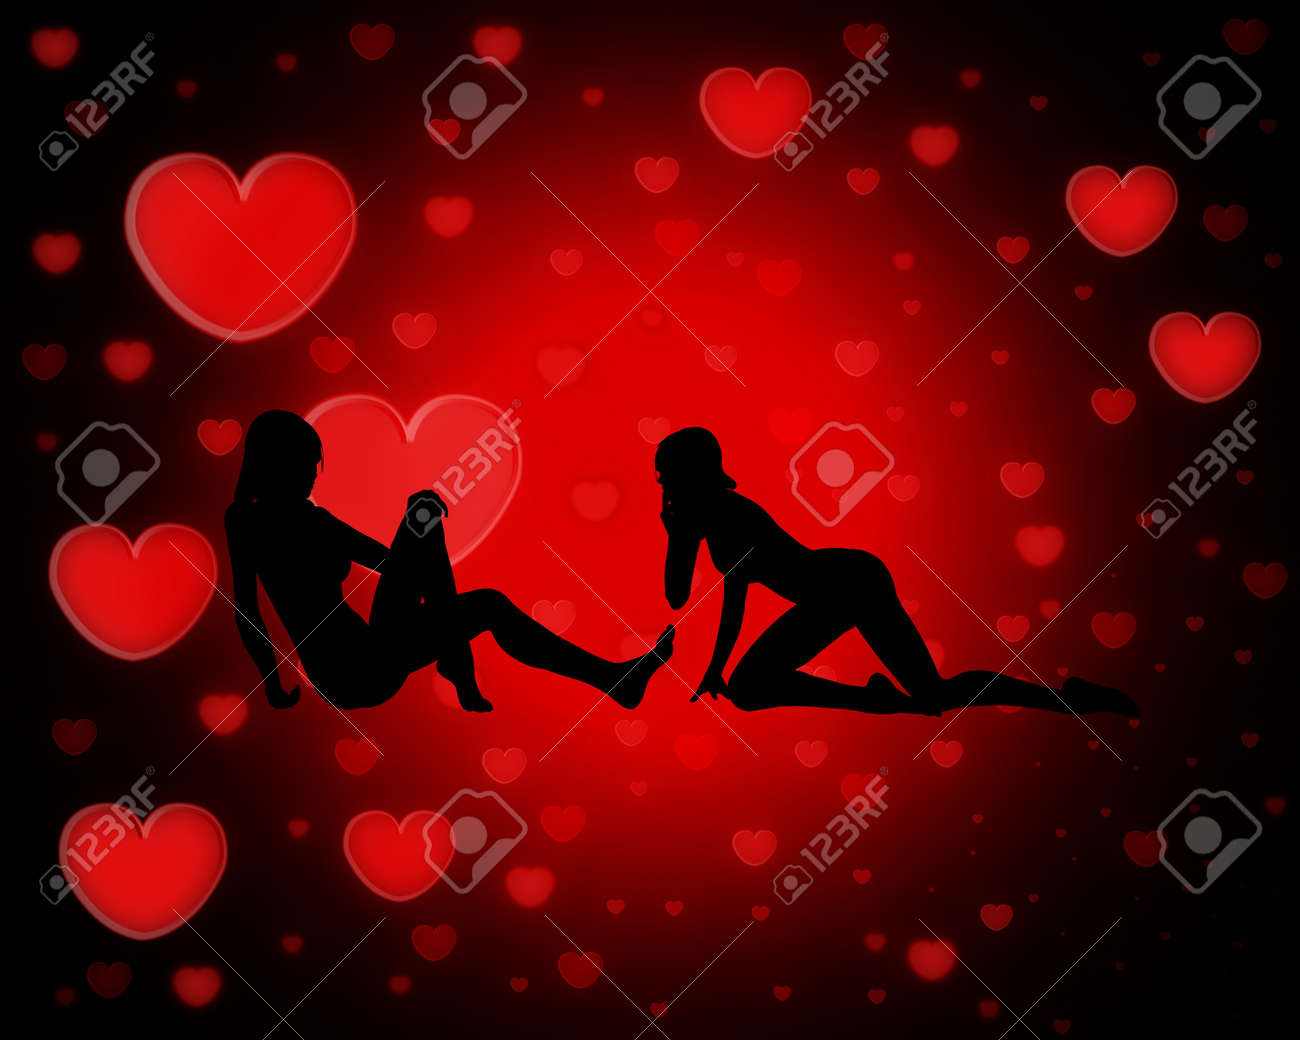 Two Women In Love Against Heart Backgrounds Stock Photo Picture